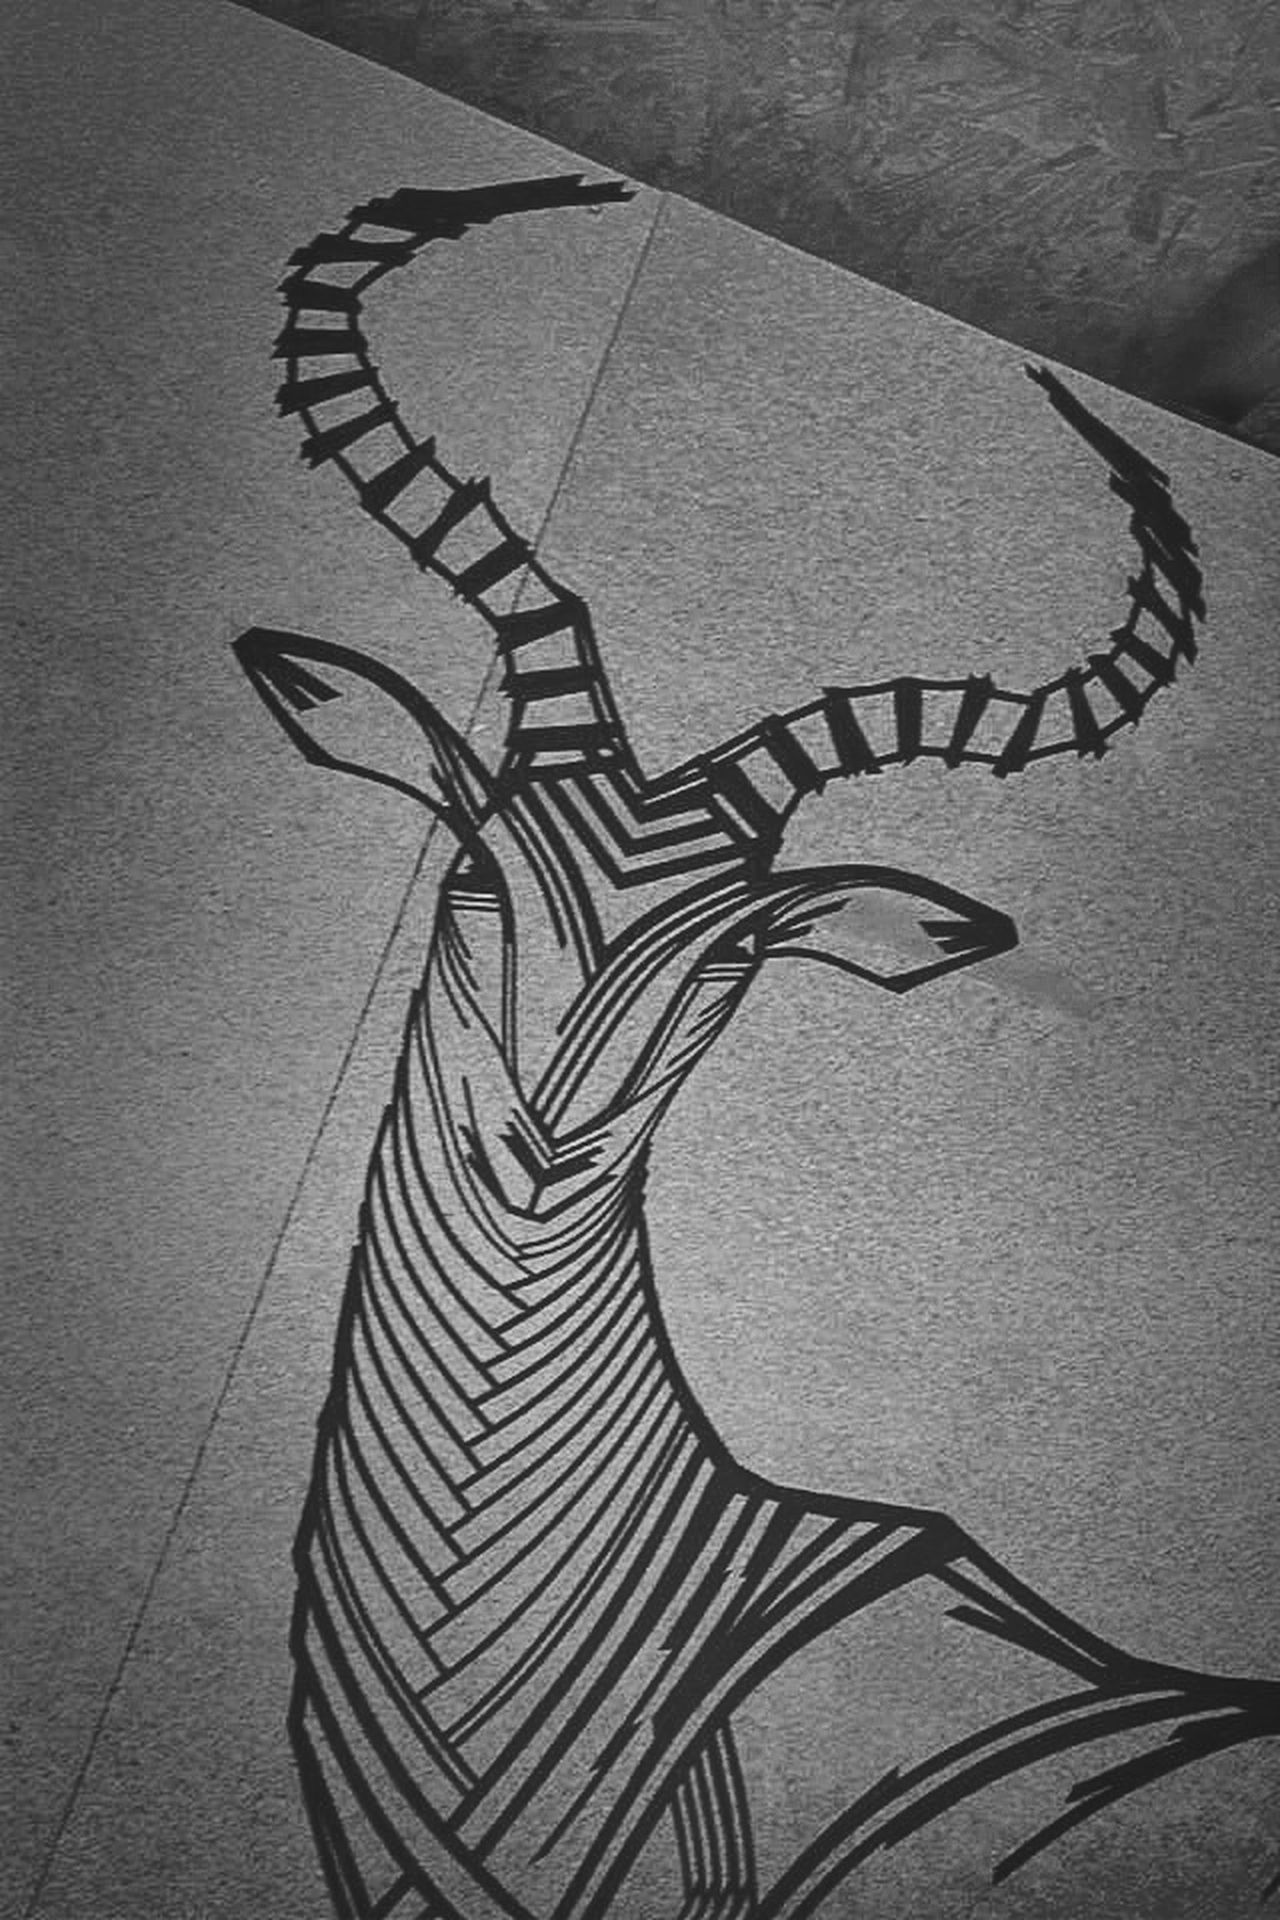 Impala antelope created with tape TAPE OVER Tape Art Streetart Streetphotography